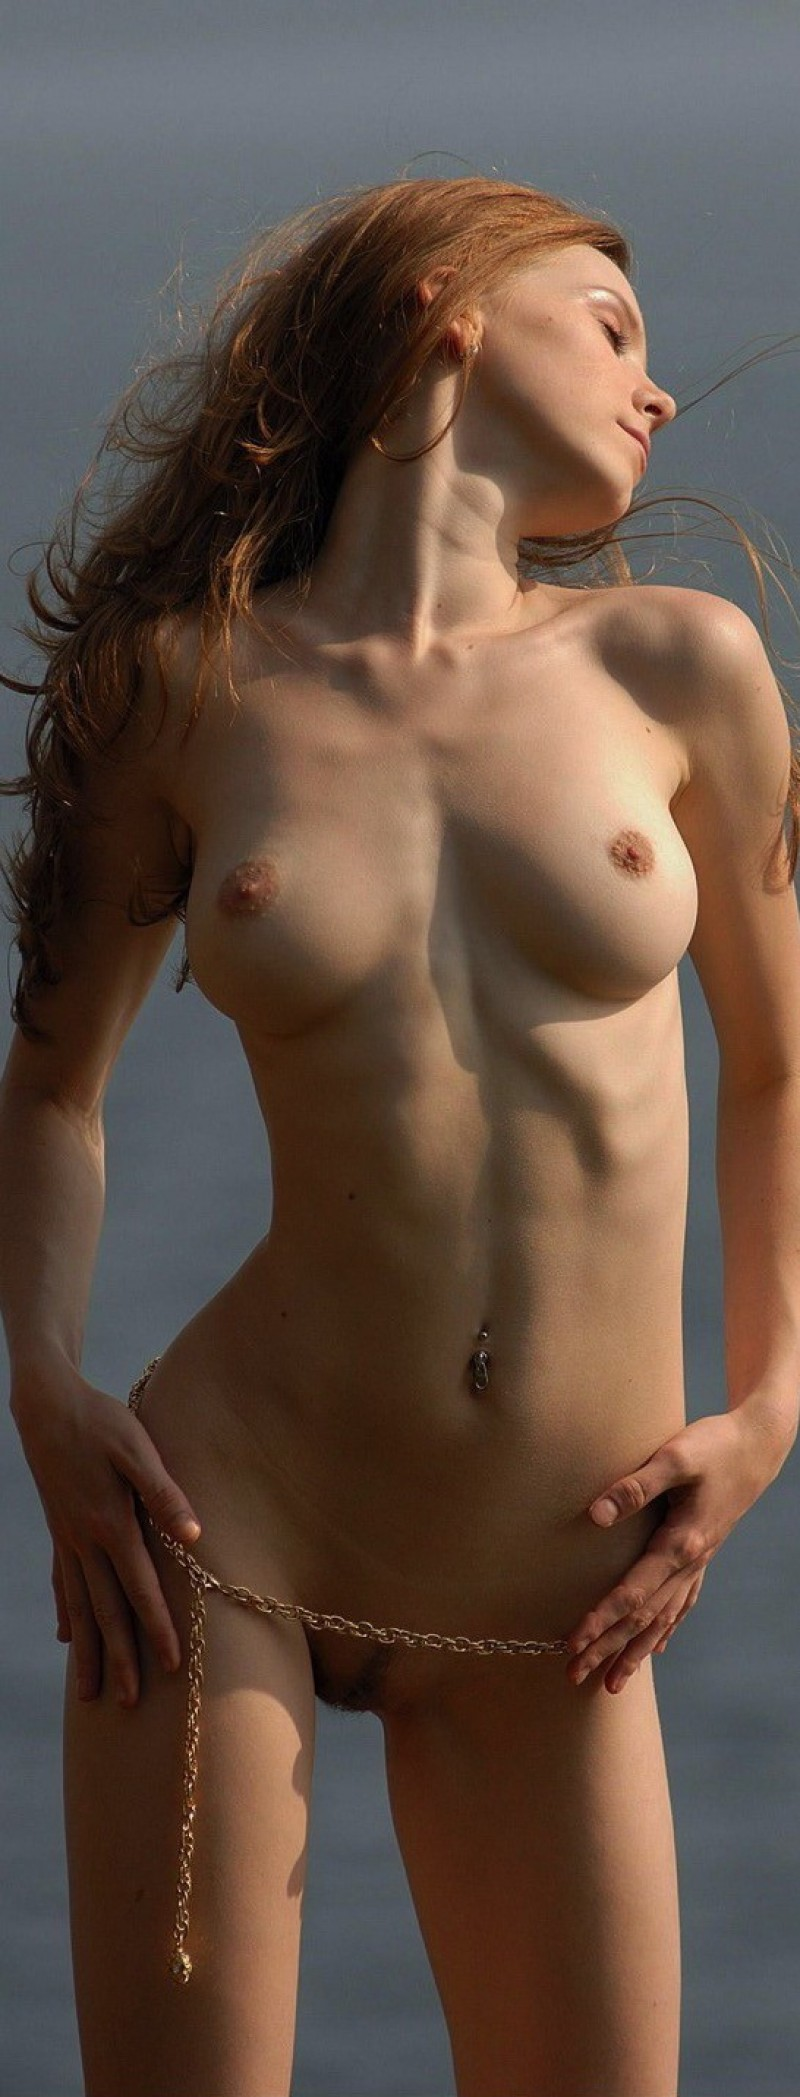 charlee chase sexy big pornstar tits pornpig free porn party Justbelt Bellychain